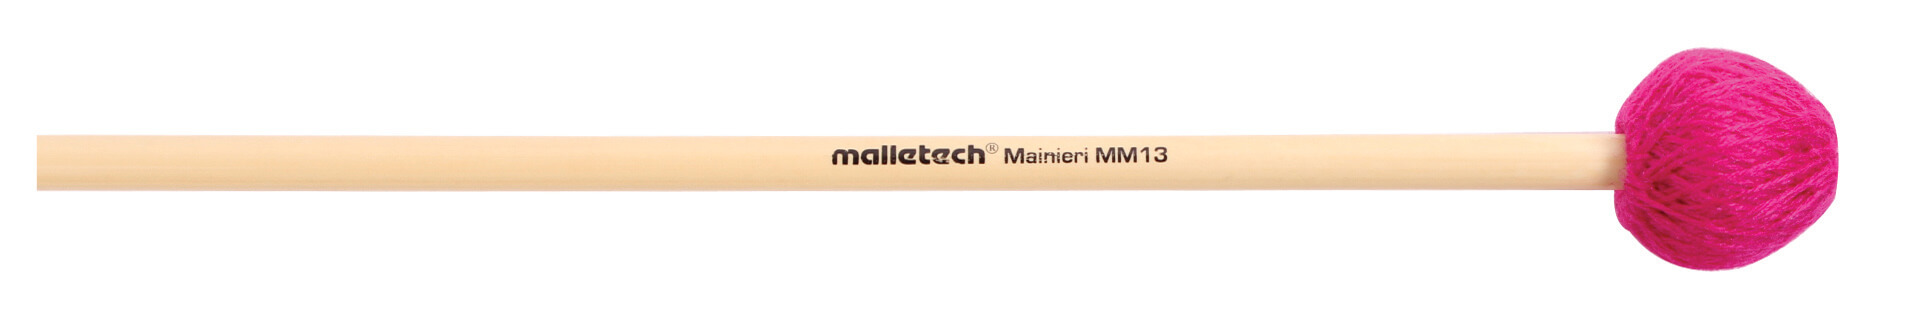 Malletech MM13 Mike Mainieri, set of 4